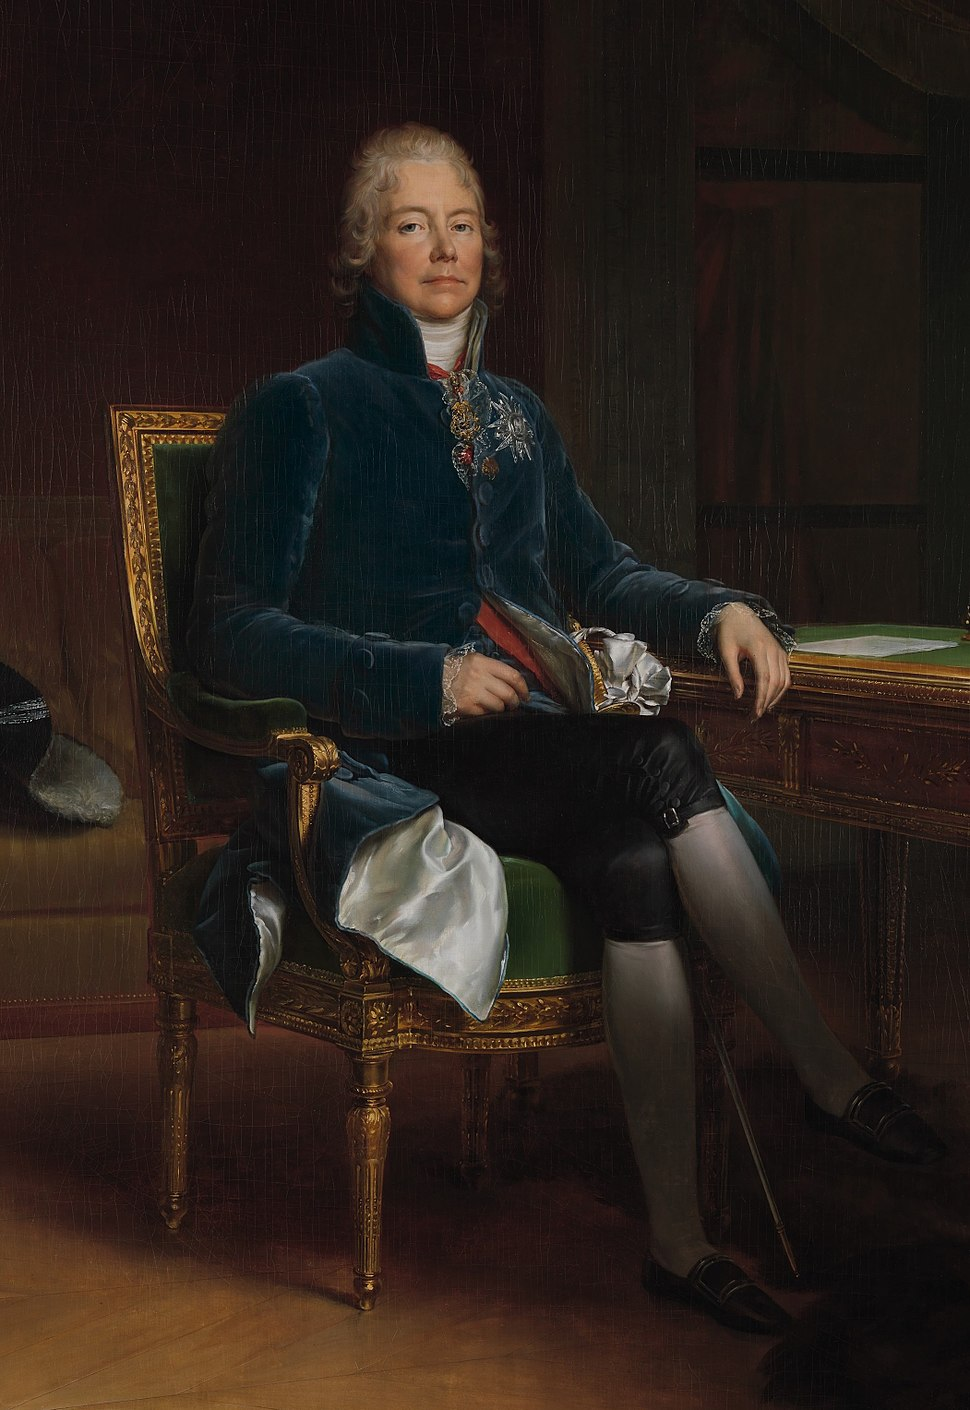 oil painting of Tallyrand, the French ambassador